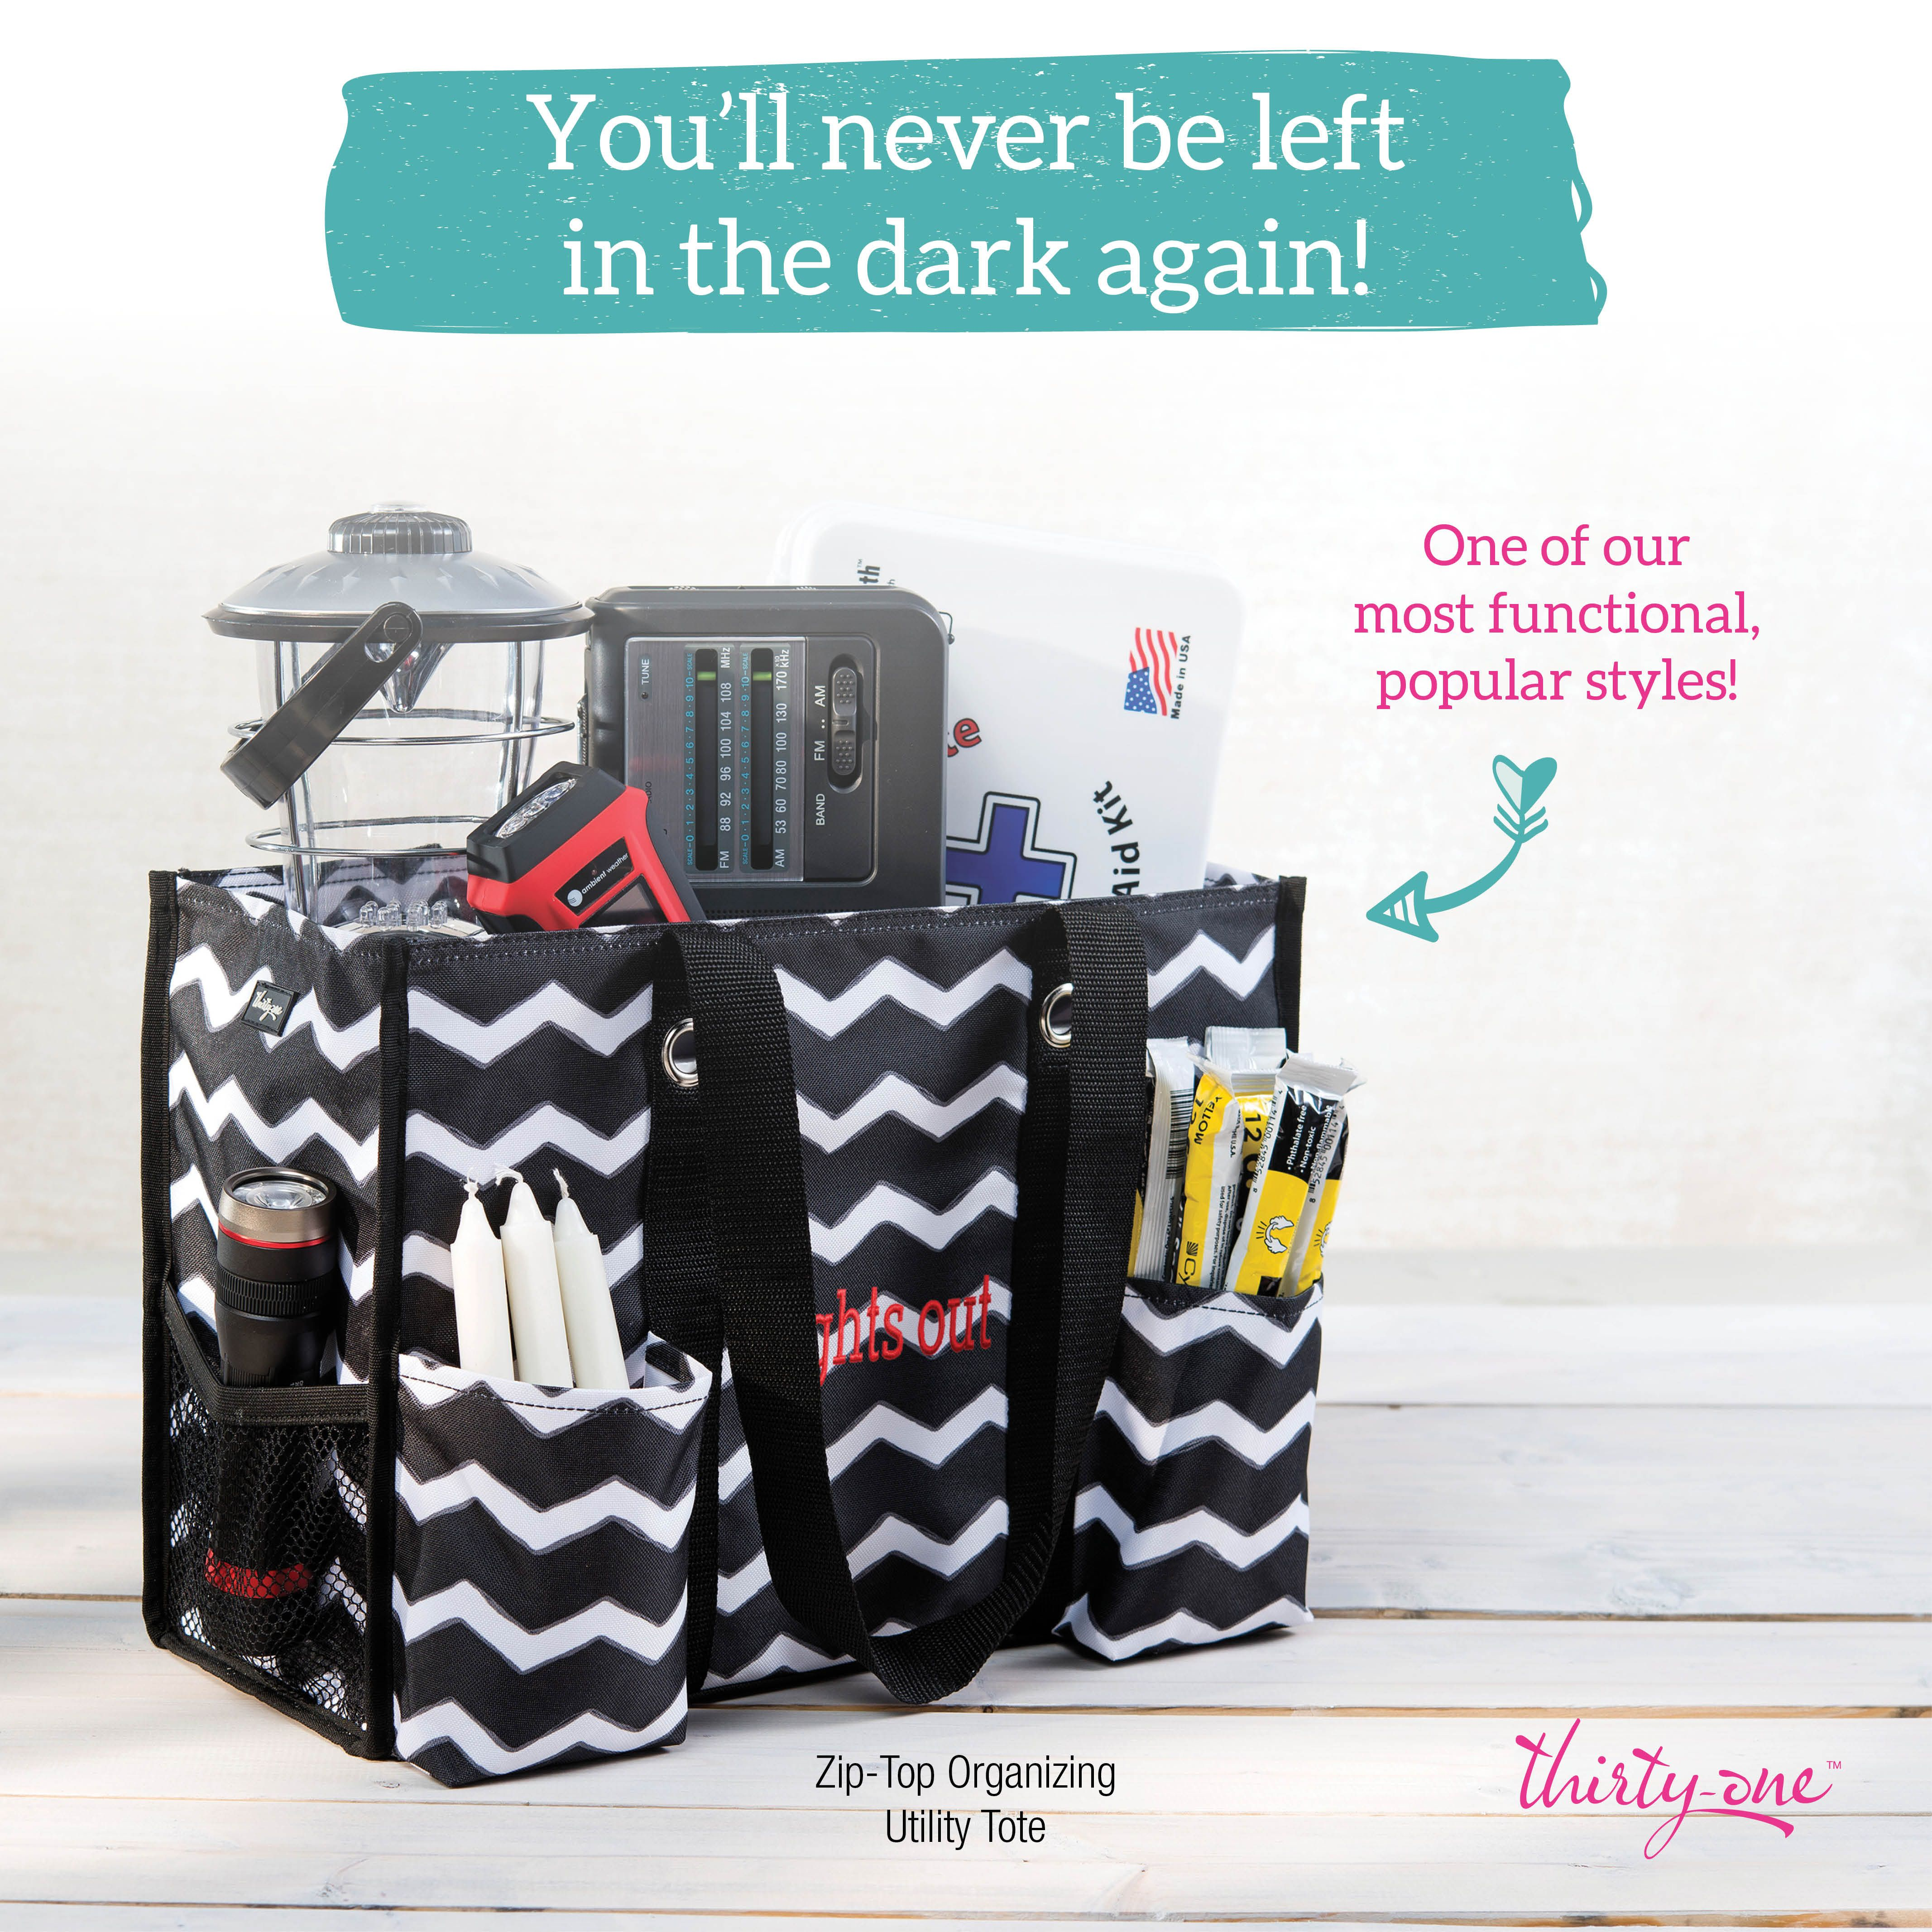 Heres A Great Way To Use Our Zip Top Organizing Utility Tote We